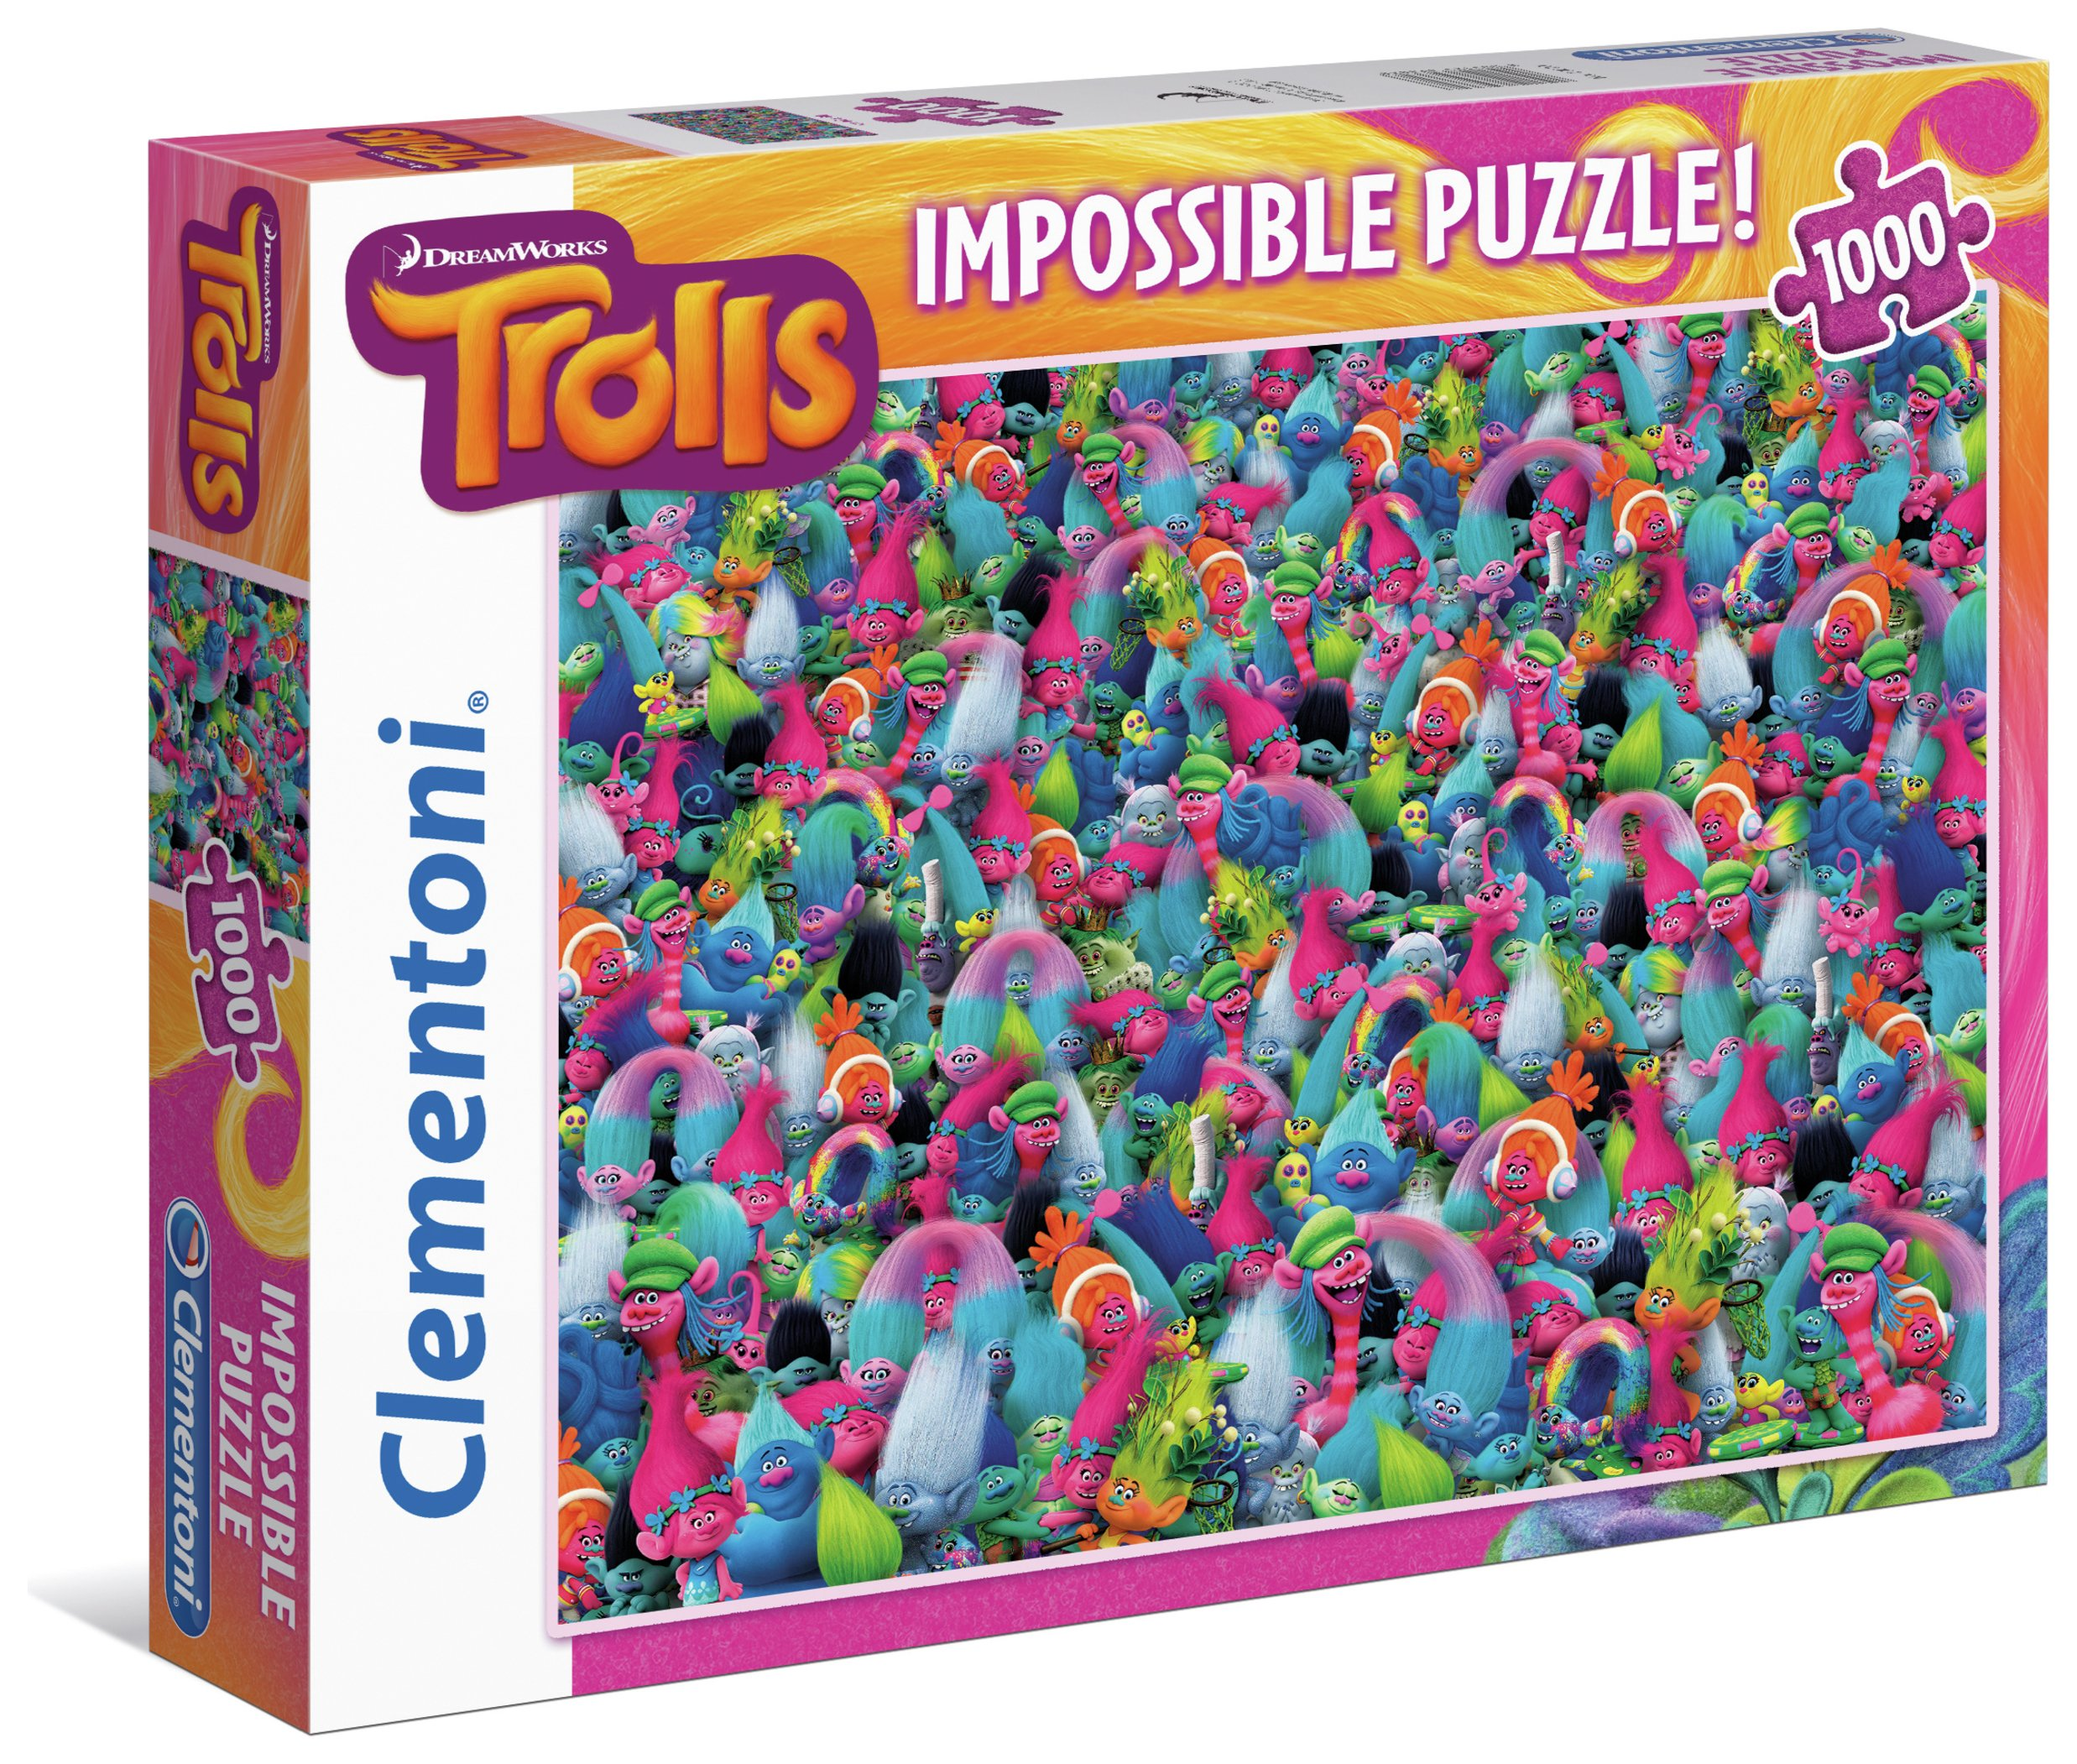 Image of Clementoni Dreamworks Trolls 1000 Impossible Puzzle